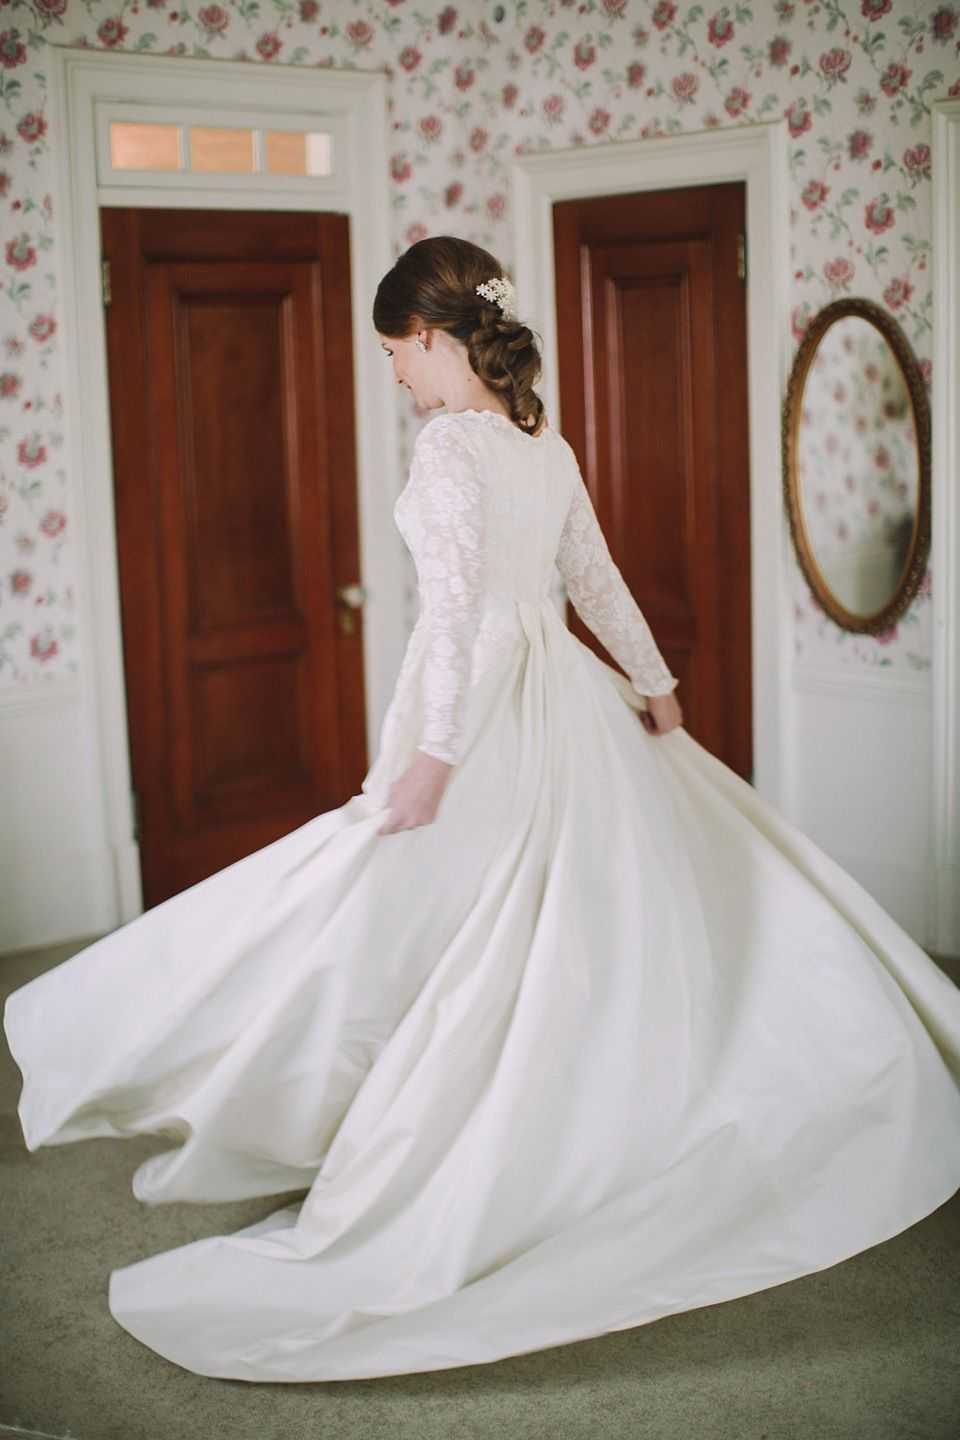 Pin by Sarah Lowry on Wedding inspo Wedding dresses